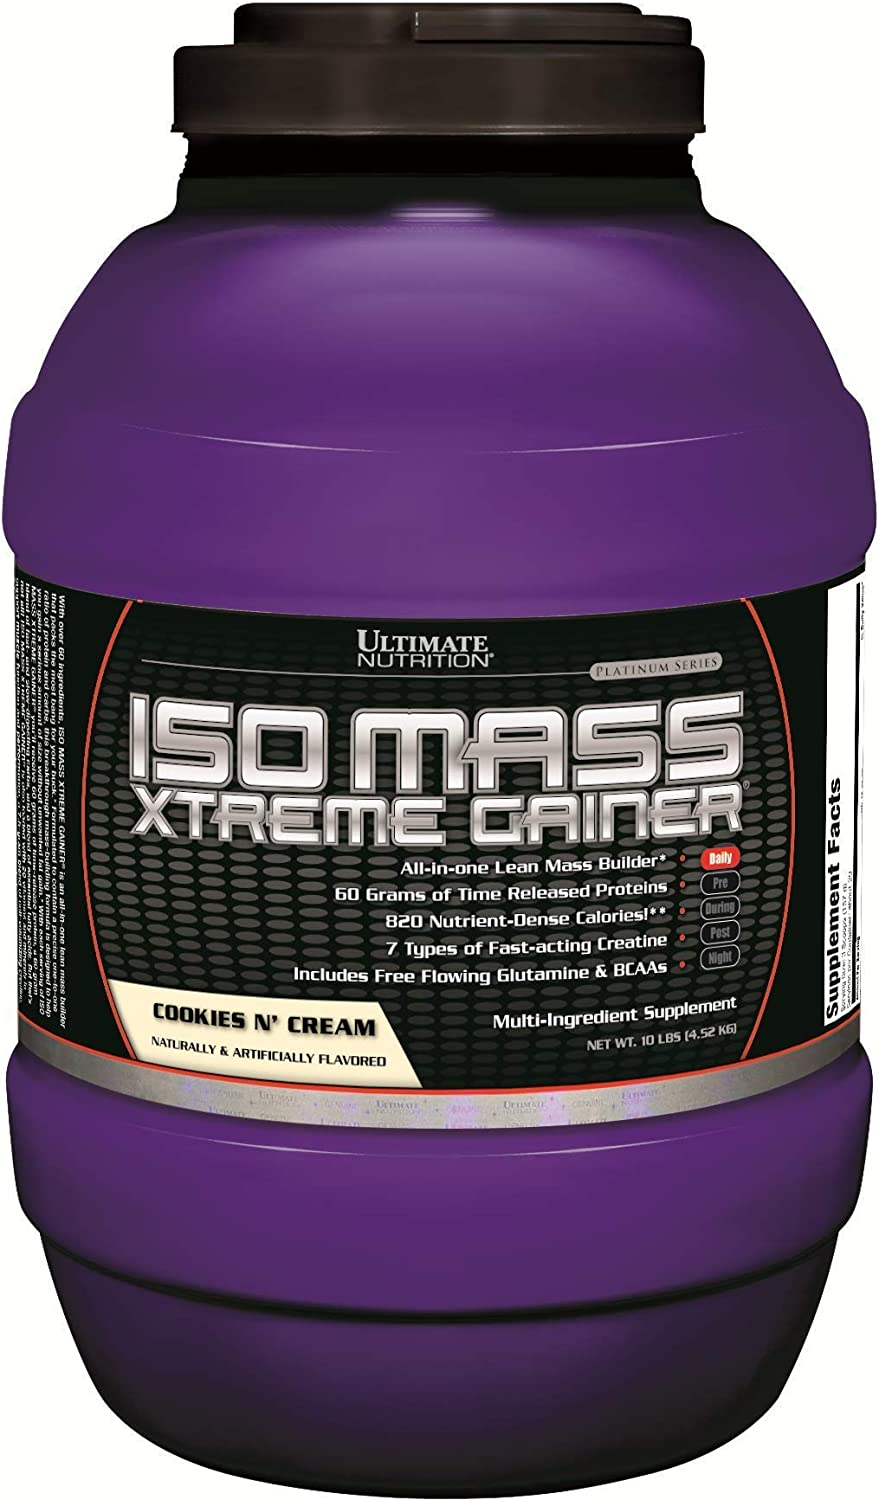 Ultimate Nutrition ISO Mass Xtreme Isolate OFFicial shop Gifts Gainer Weight Protein